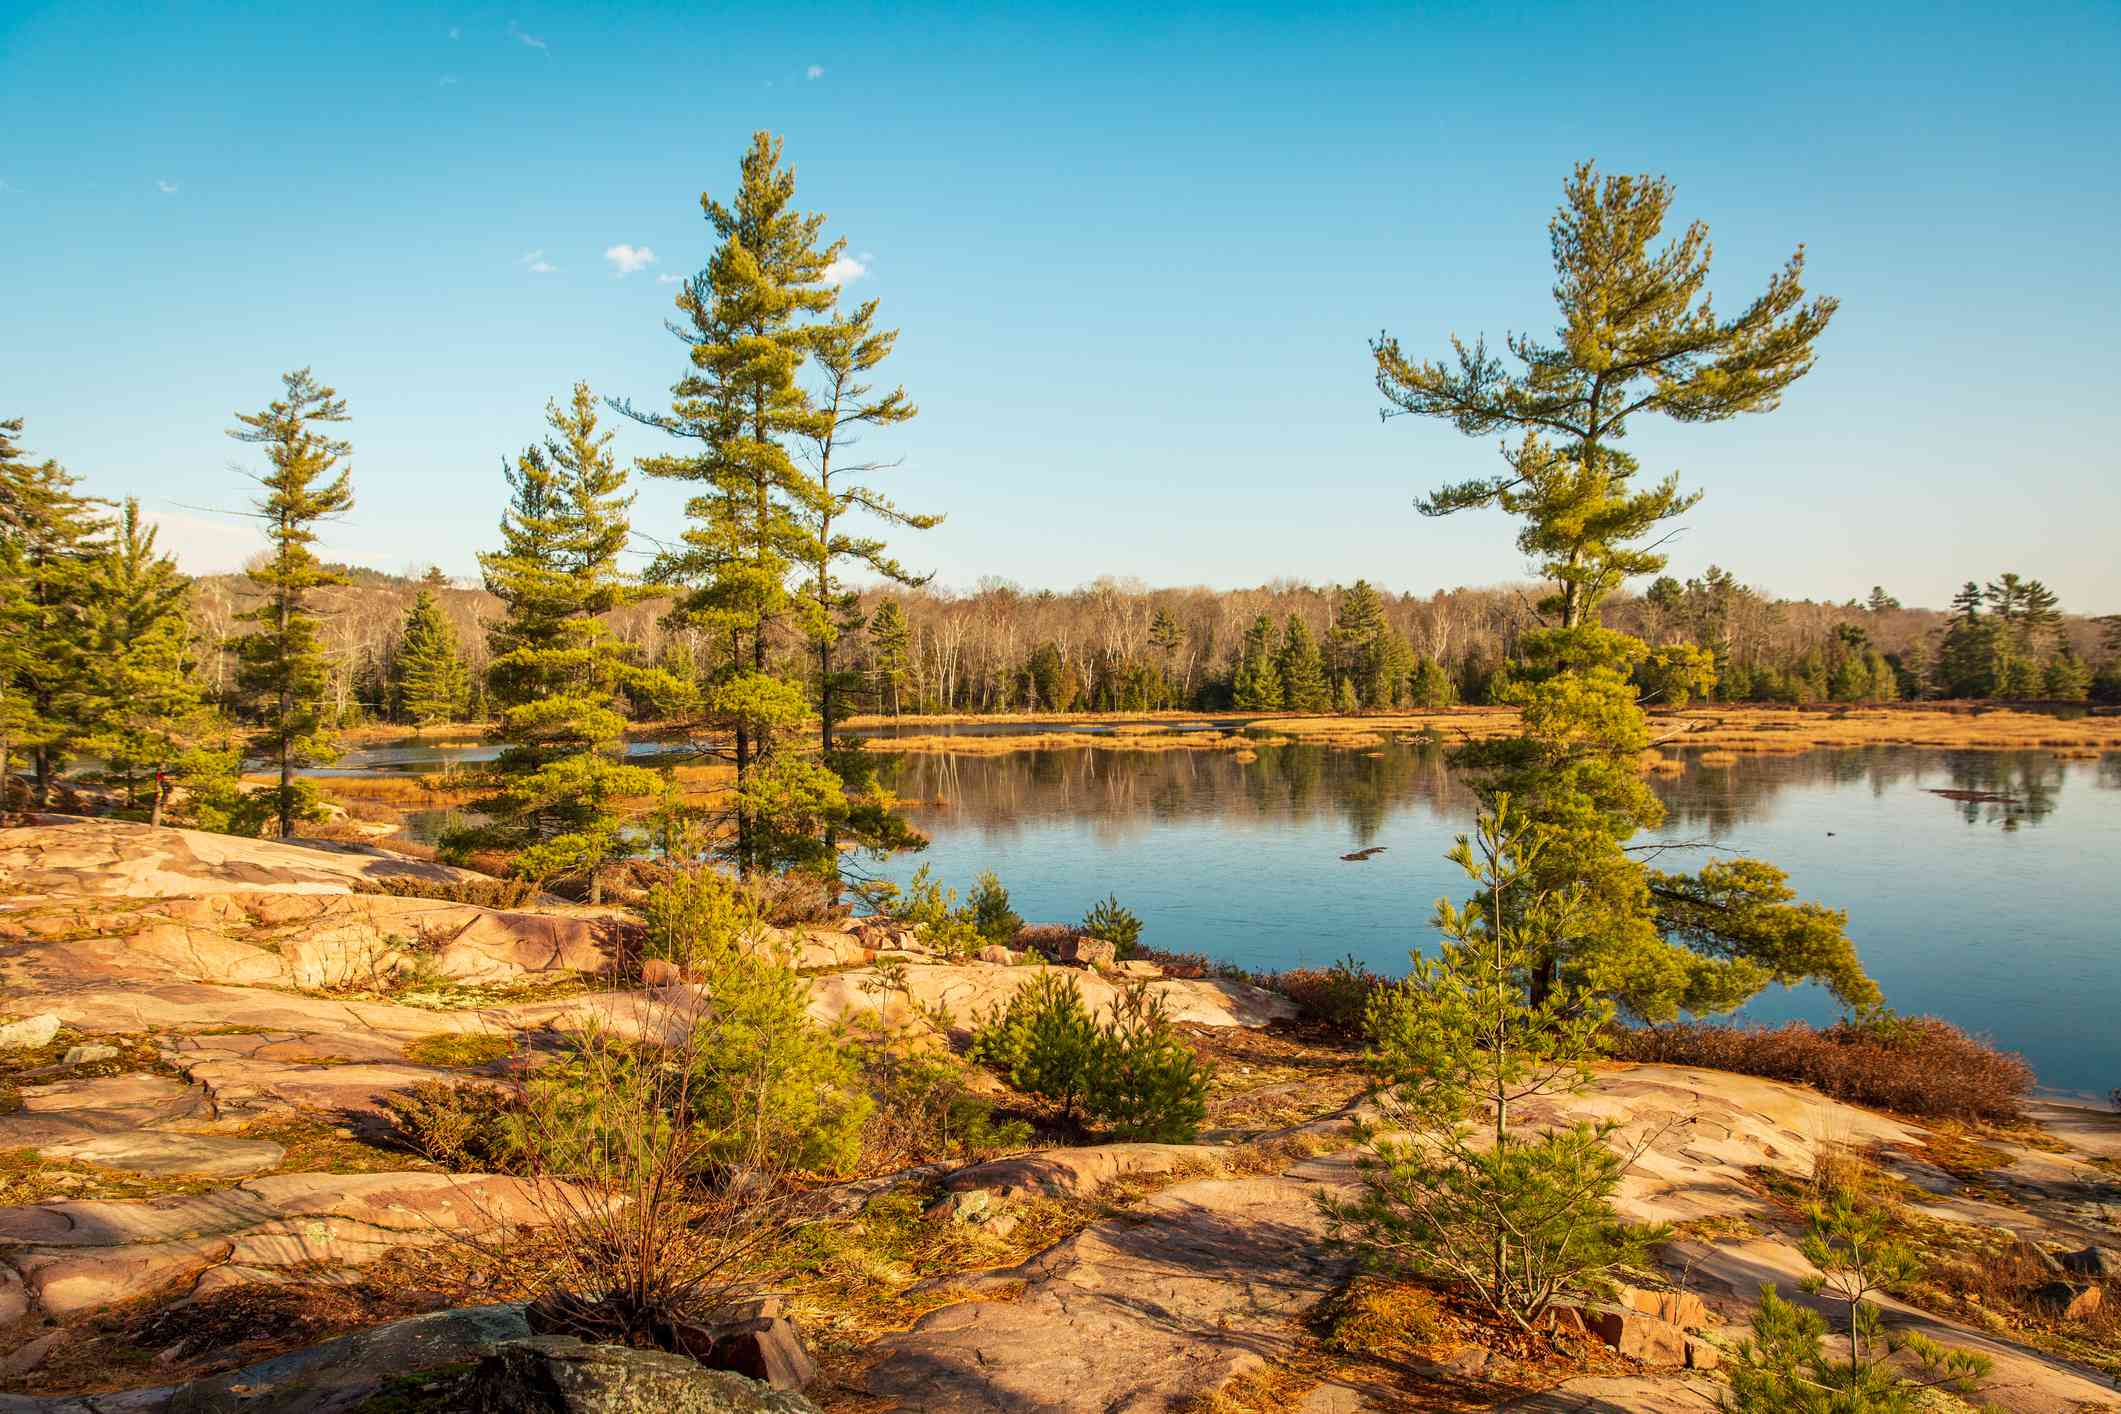 View of a pristine lake surrounded by green trees against a blue sky on a sunny day at Killarney Provincial Park